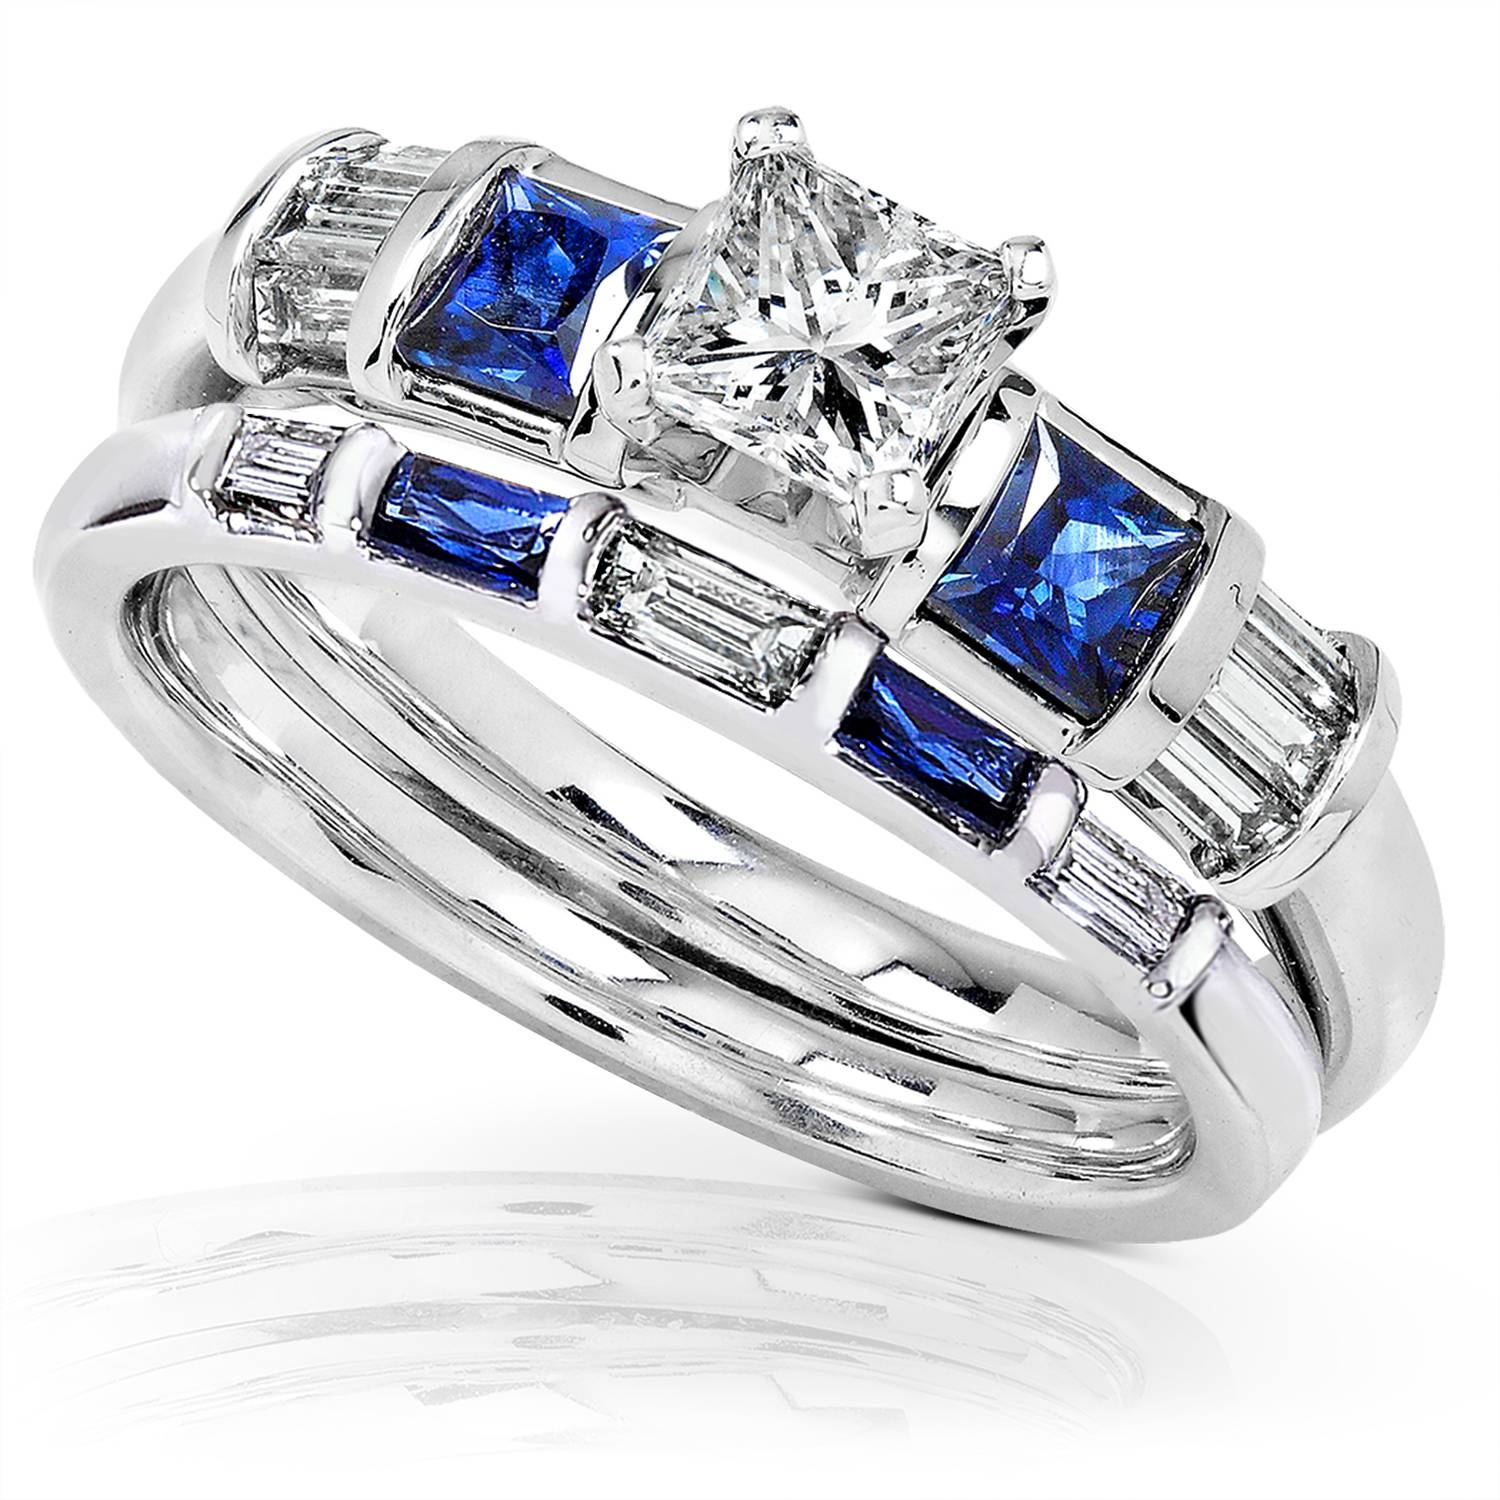 Blue Sapphire & Diamond Wedding Rings Set 1 Carat (ctw) In 14k Regarding Sapphire Wedding Rings (View 13 of 15)